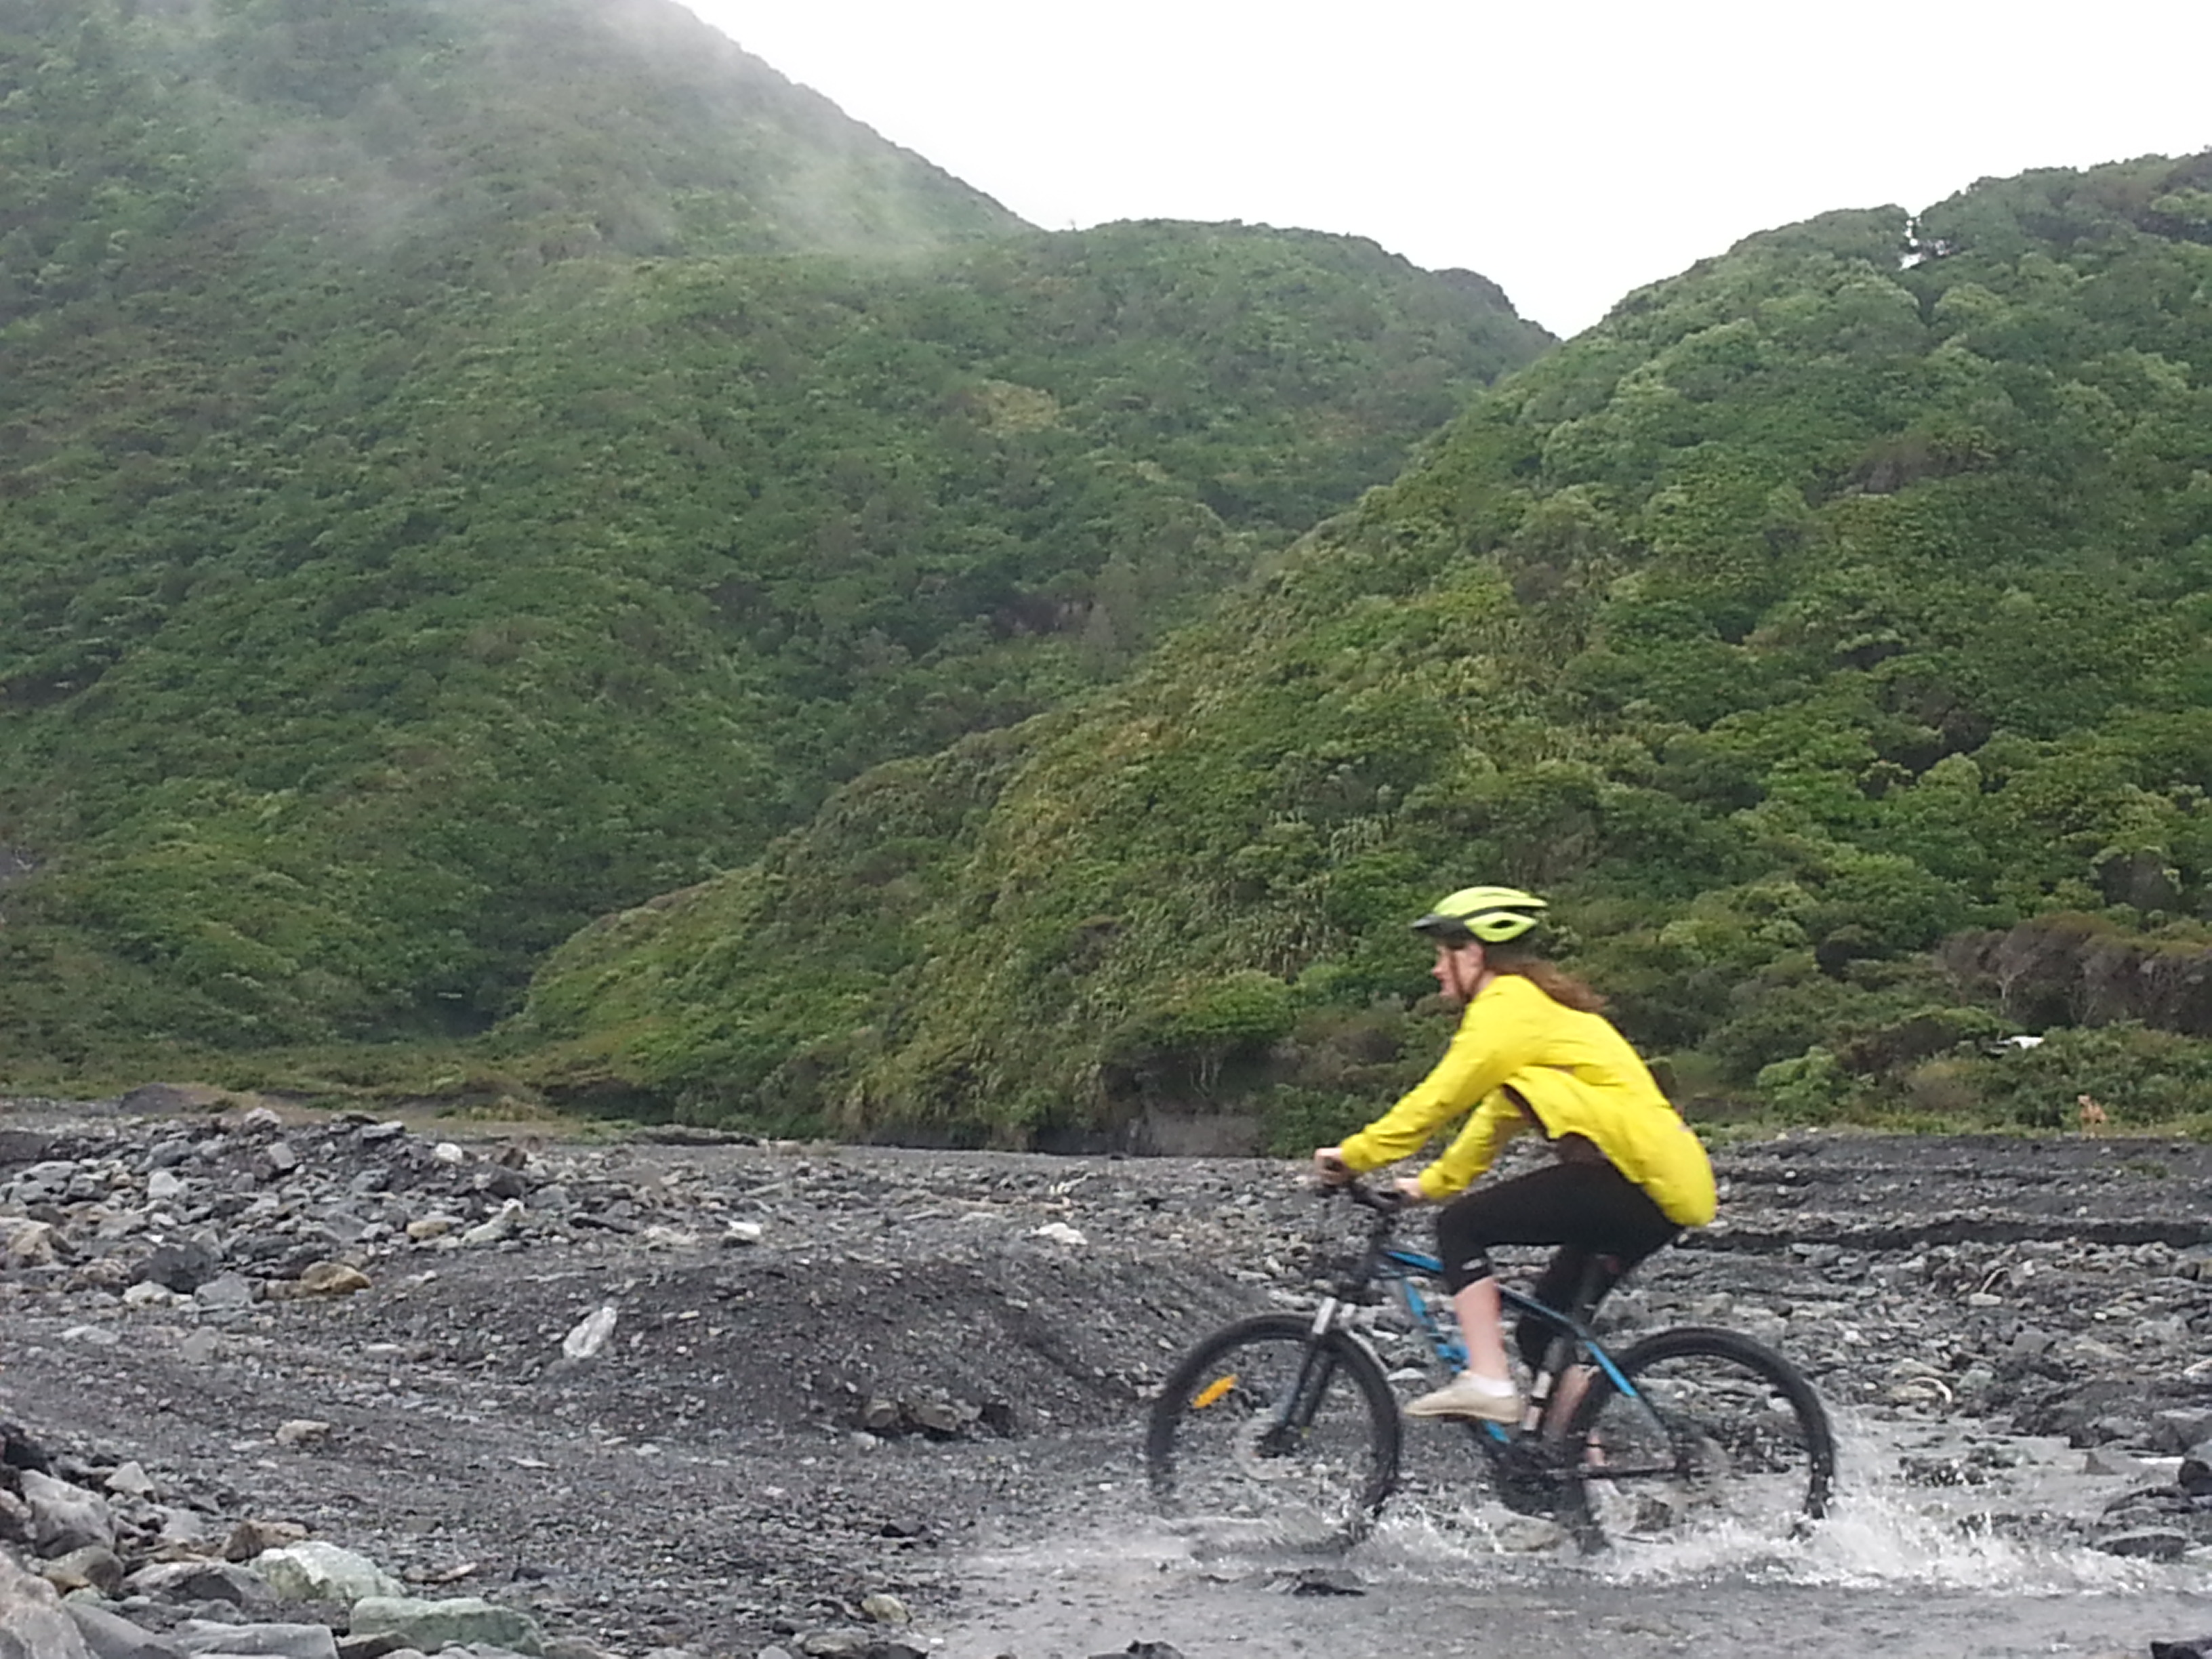 Remutaka (Rimutaka) Cycle Trail - Guided Highlights Tour